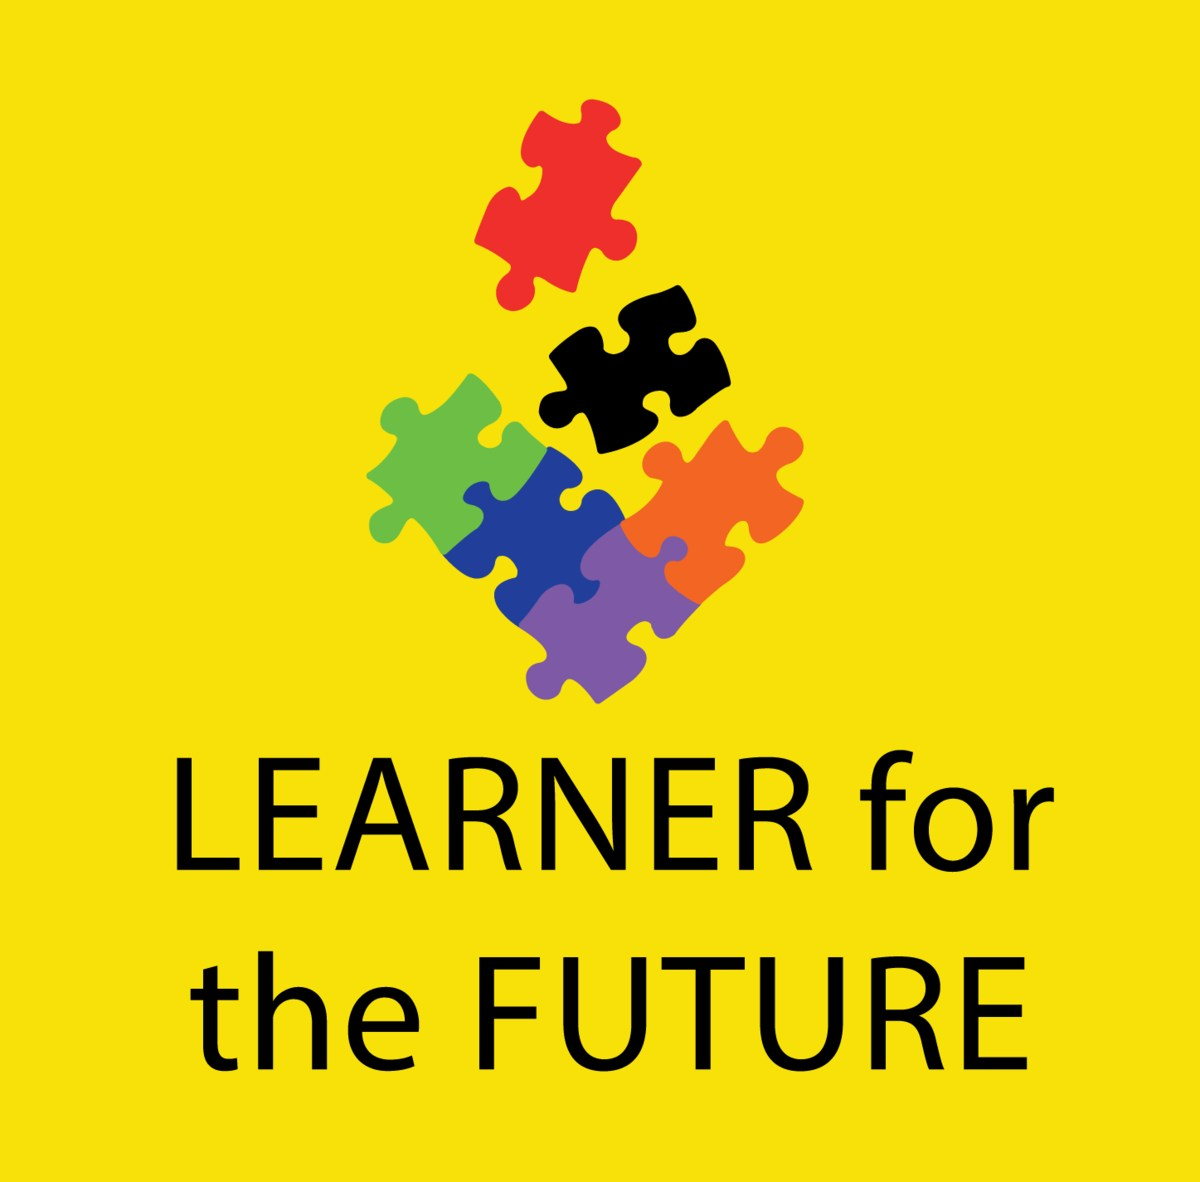 Learner for the future graphic